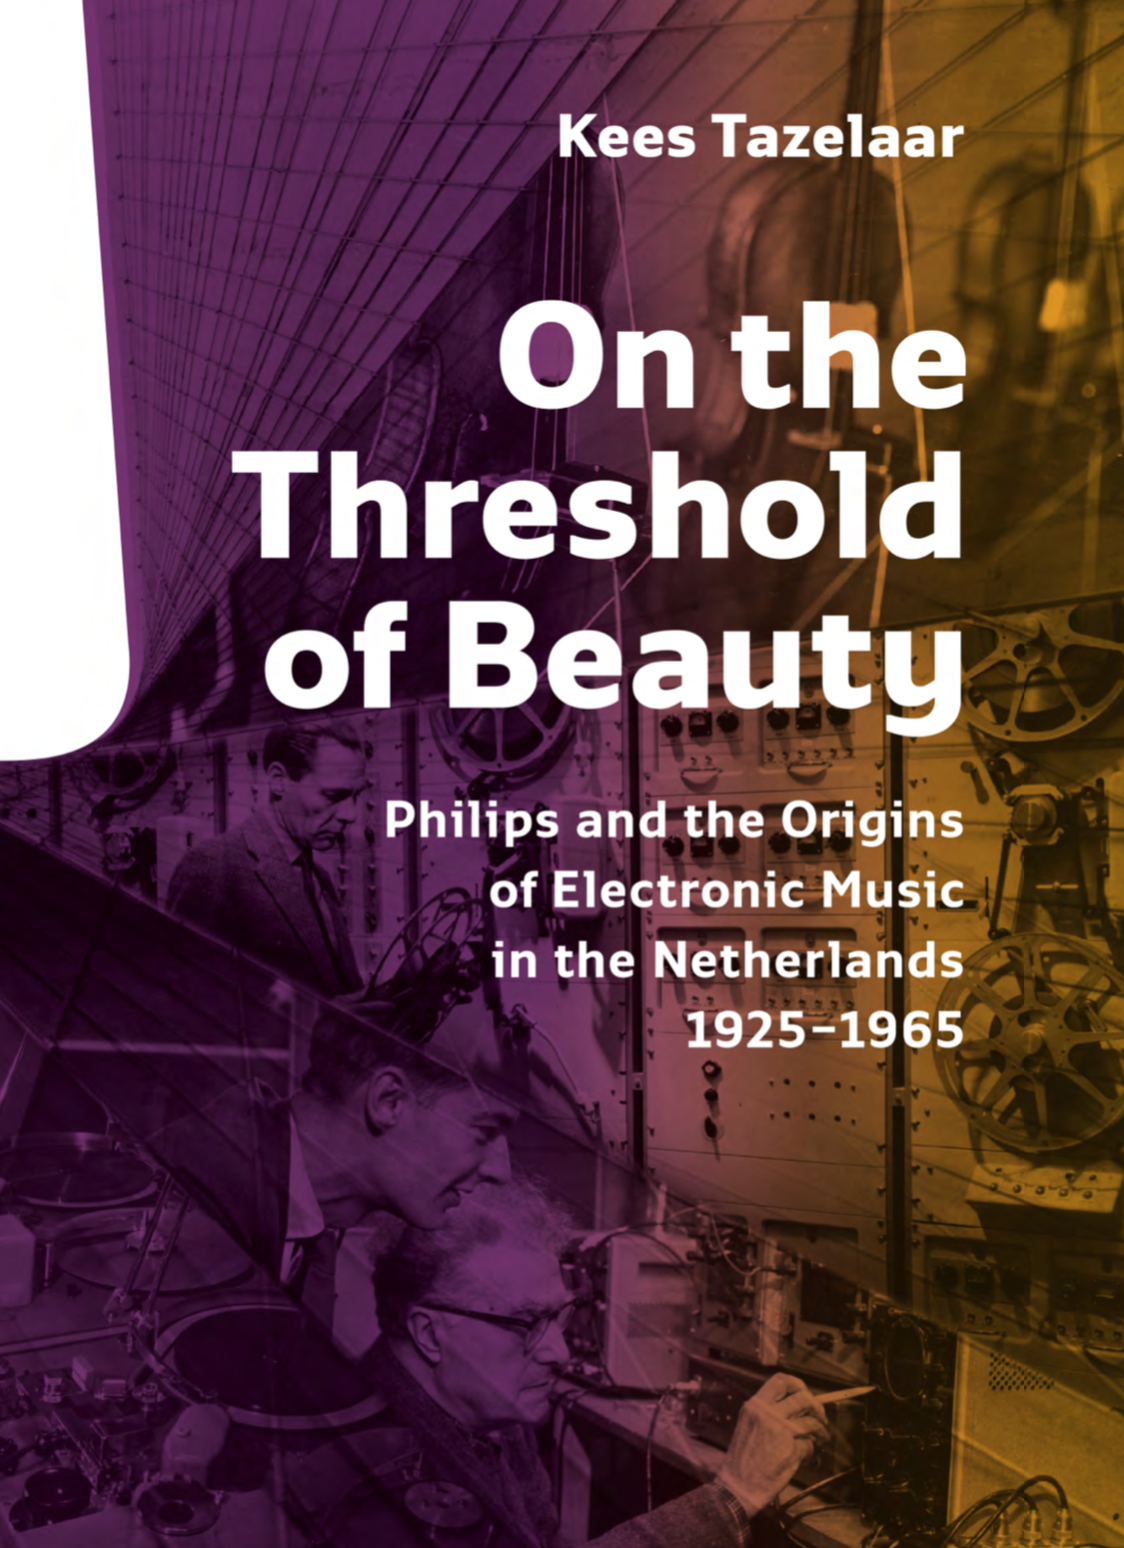 On the Threshold of Beauty - Digital Version (Free Download)